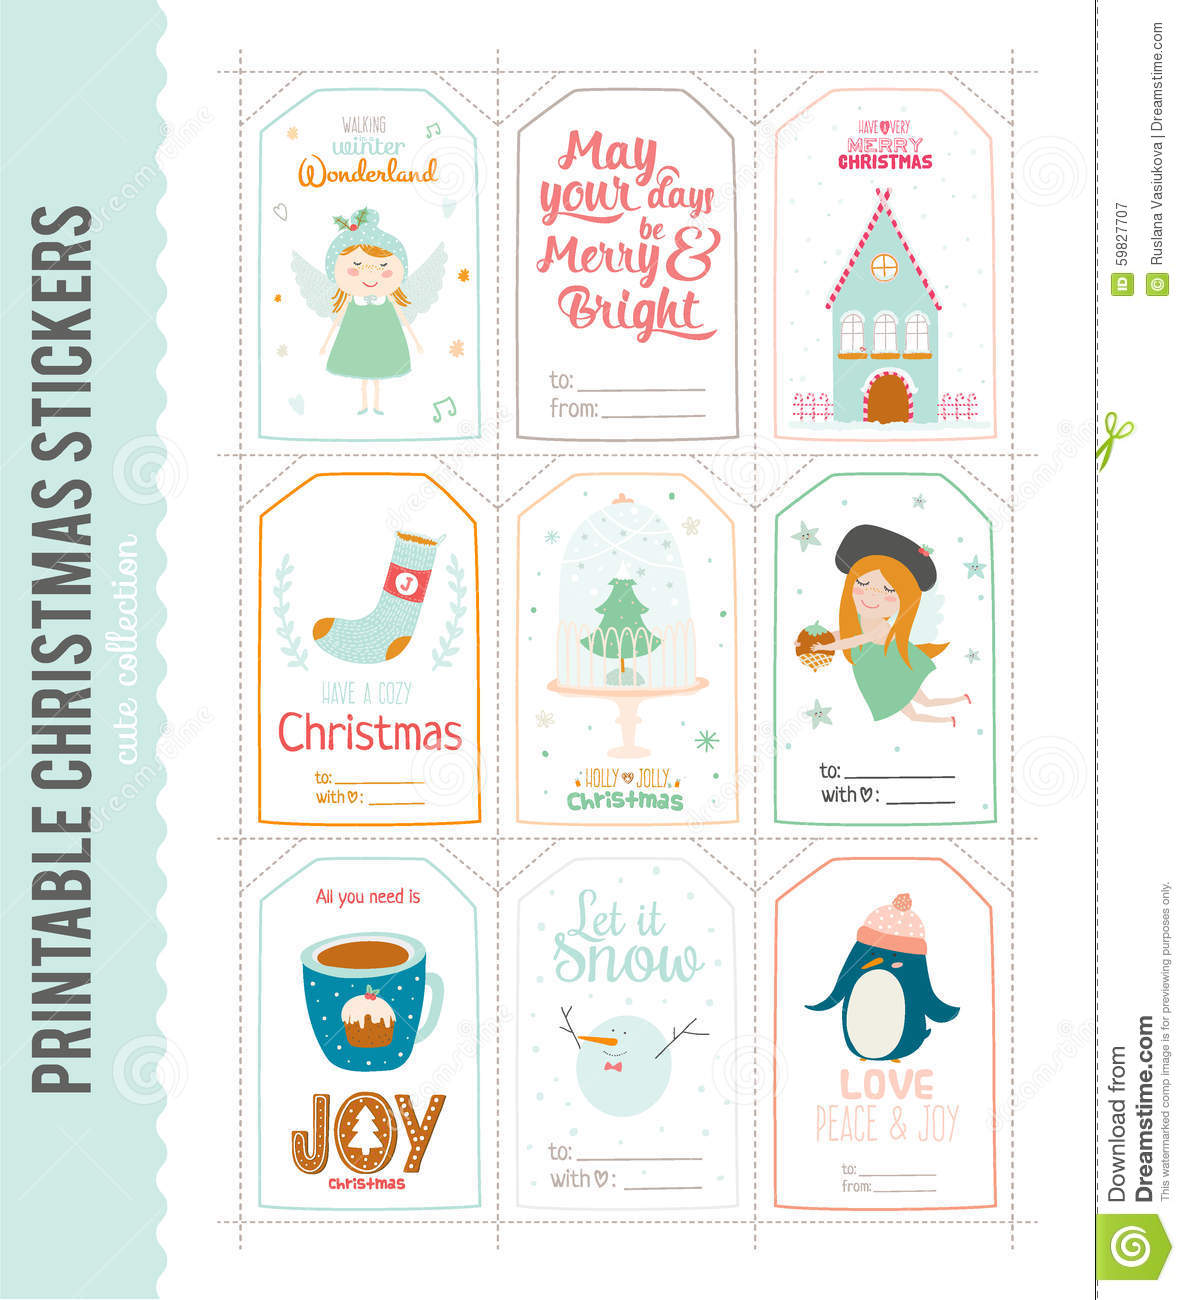 Cute Vector Christmas Cards And Stickers Stock Vector - Illustration ...